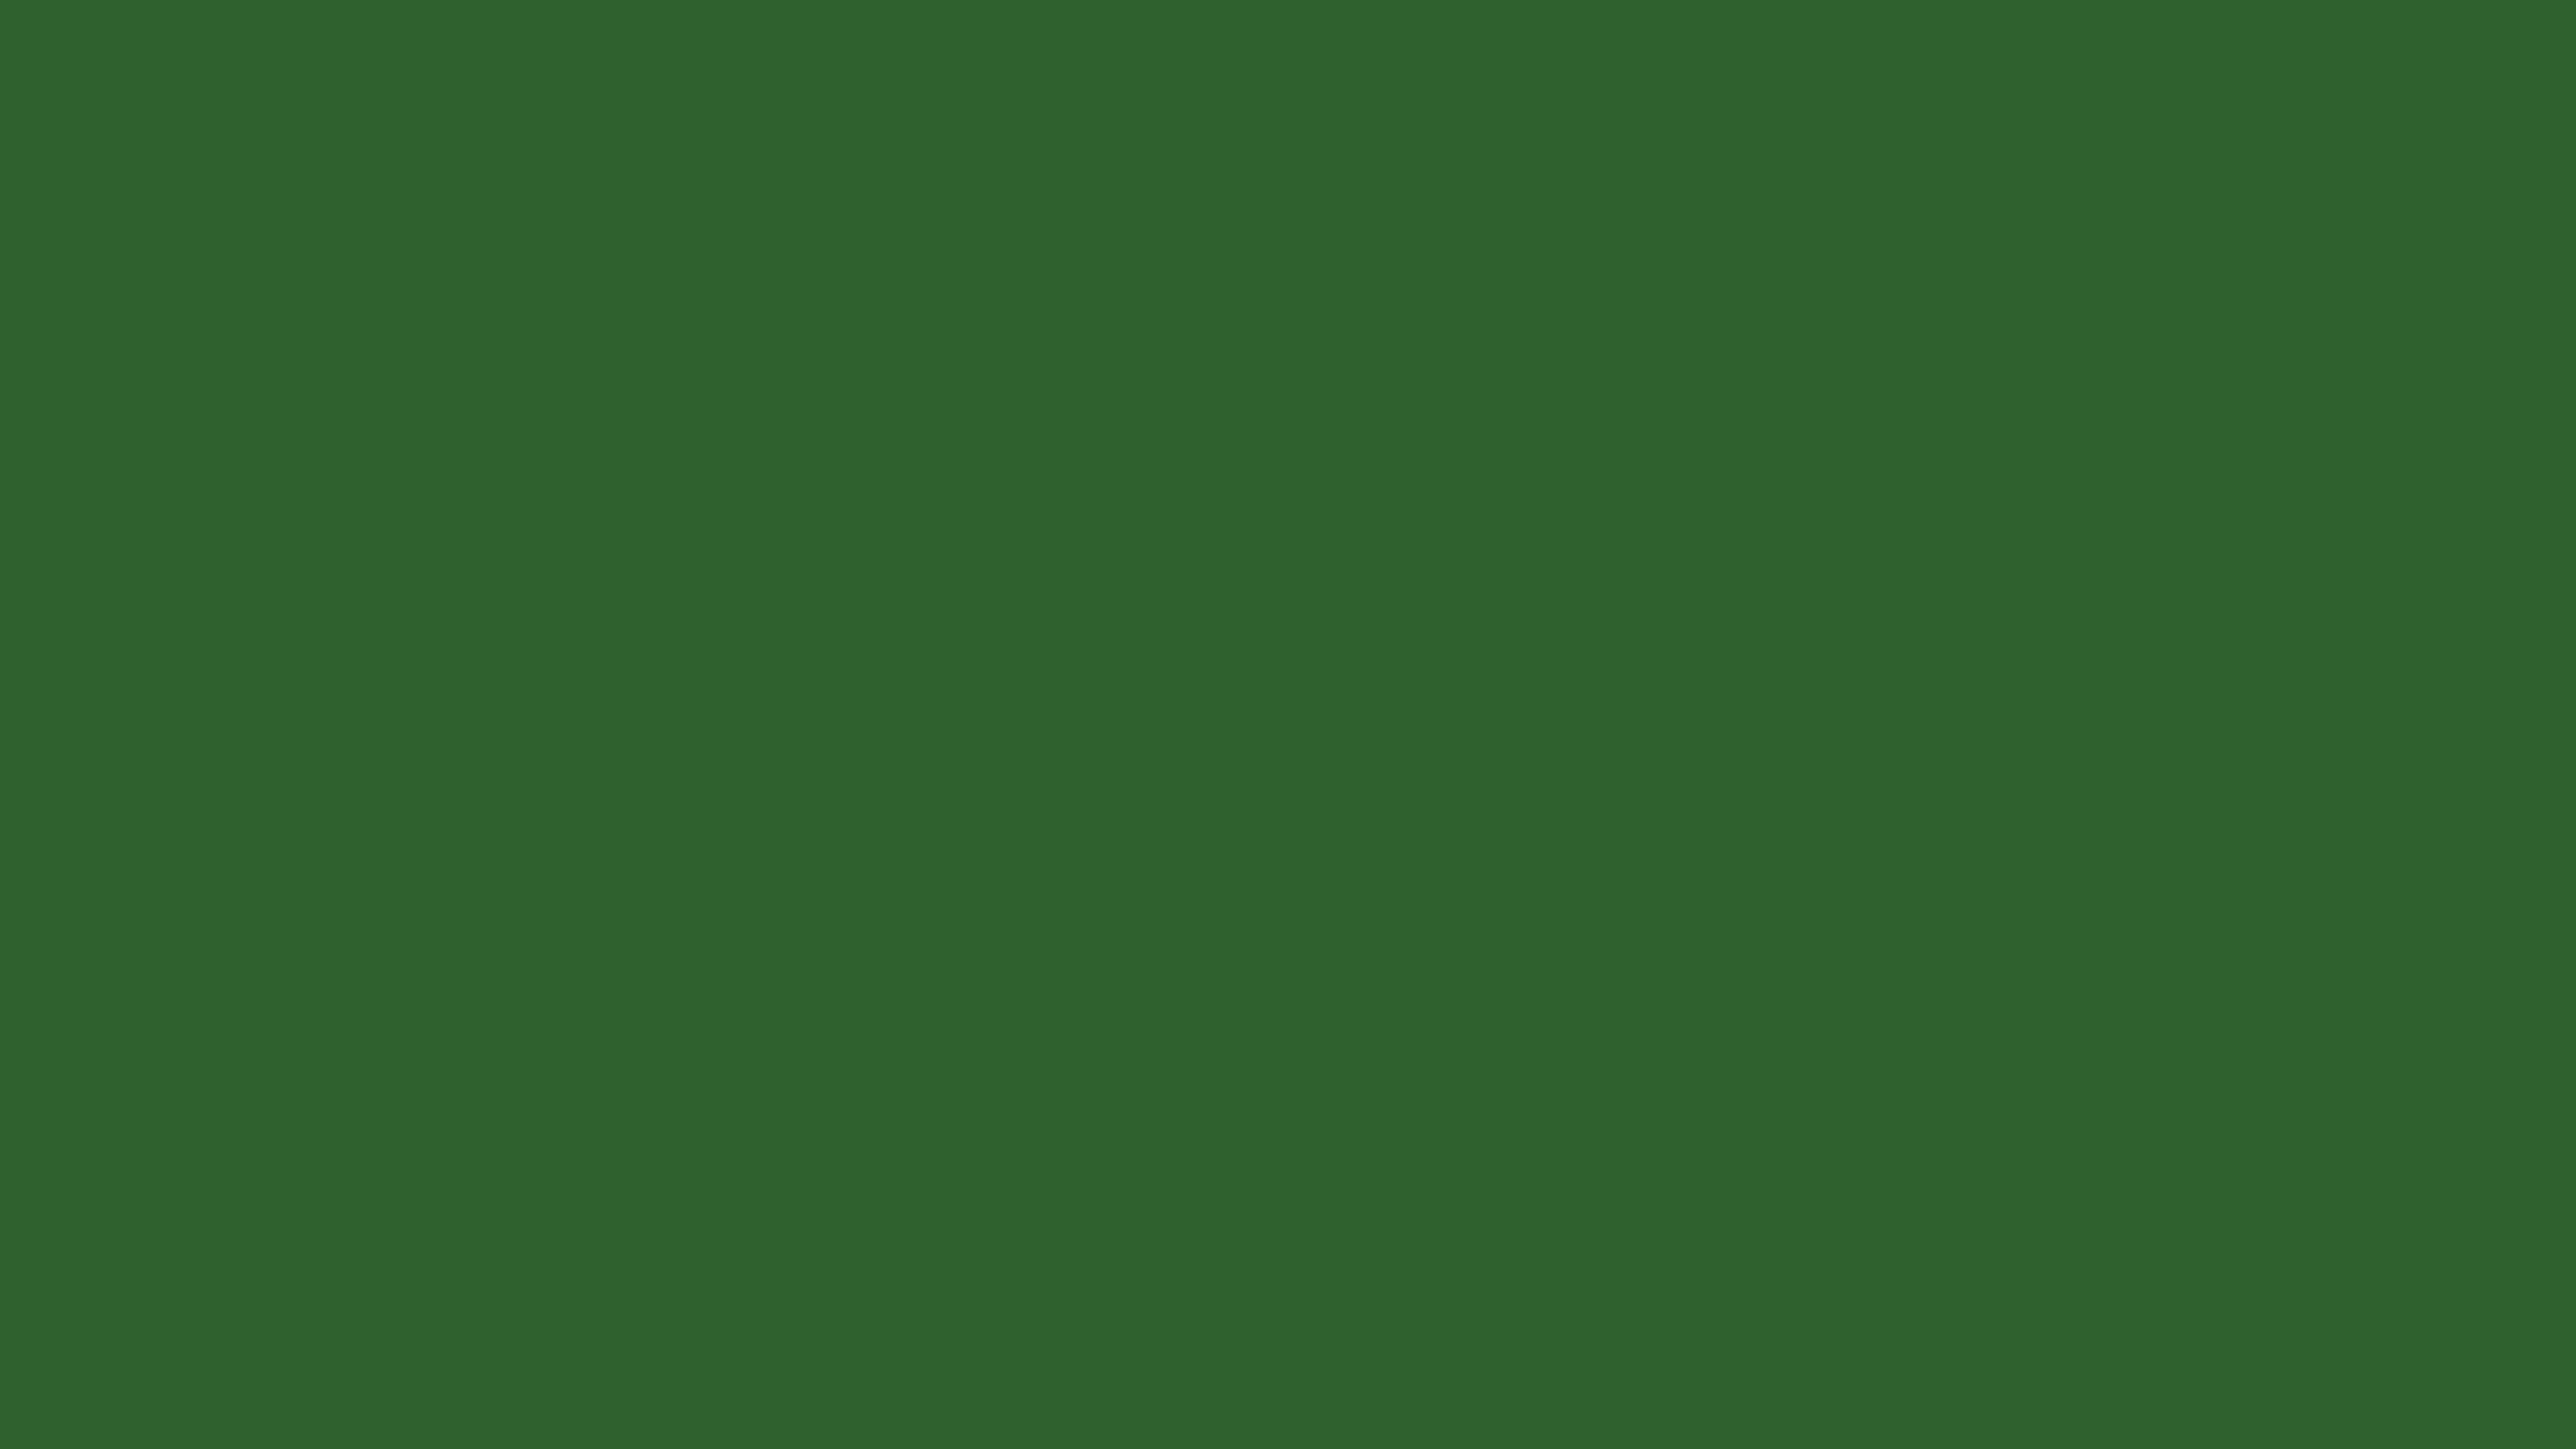 5120x2880 Mughal Green Solid Color Background